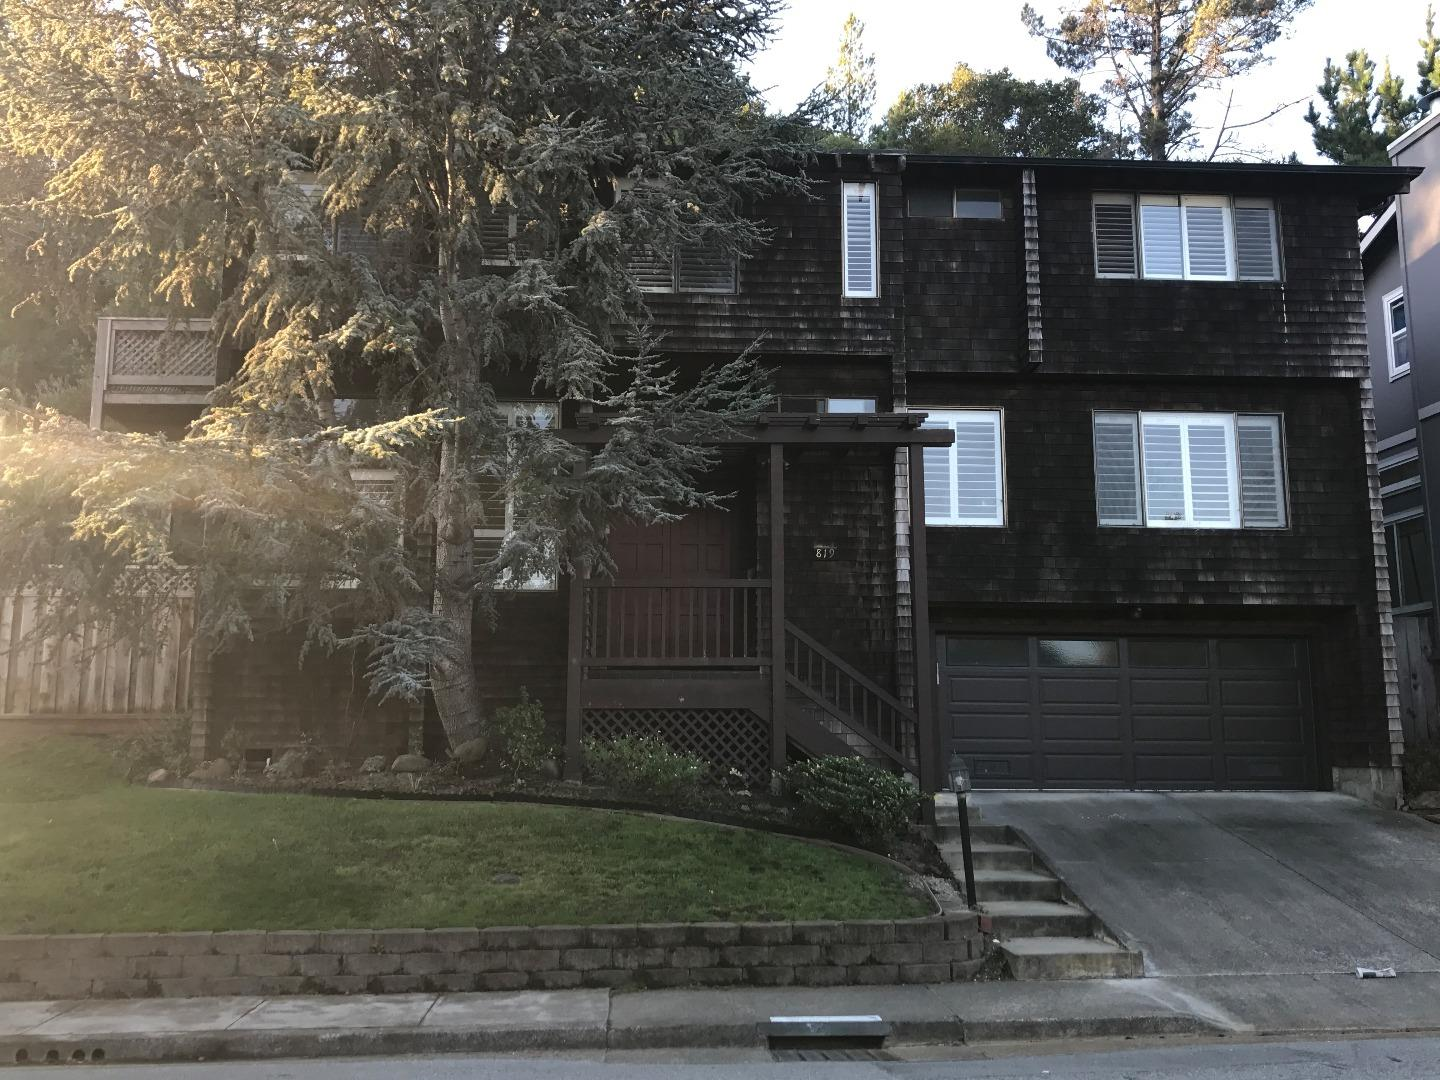 Single Family Home for Rent at 819 Helen Drive 819 Helen Drive Millbrae, California 94030 United States